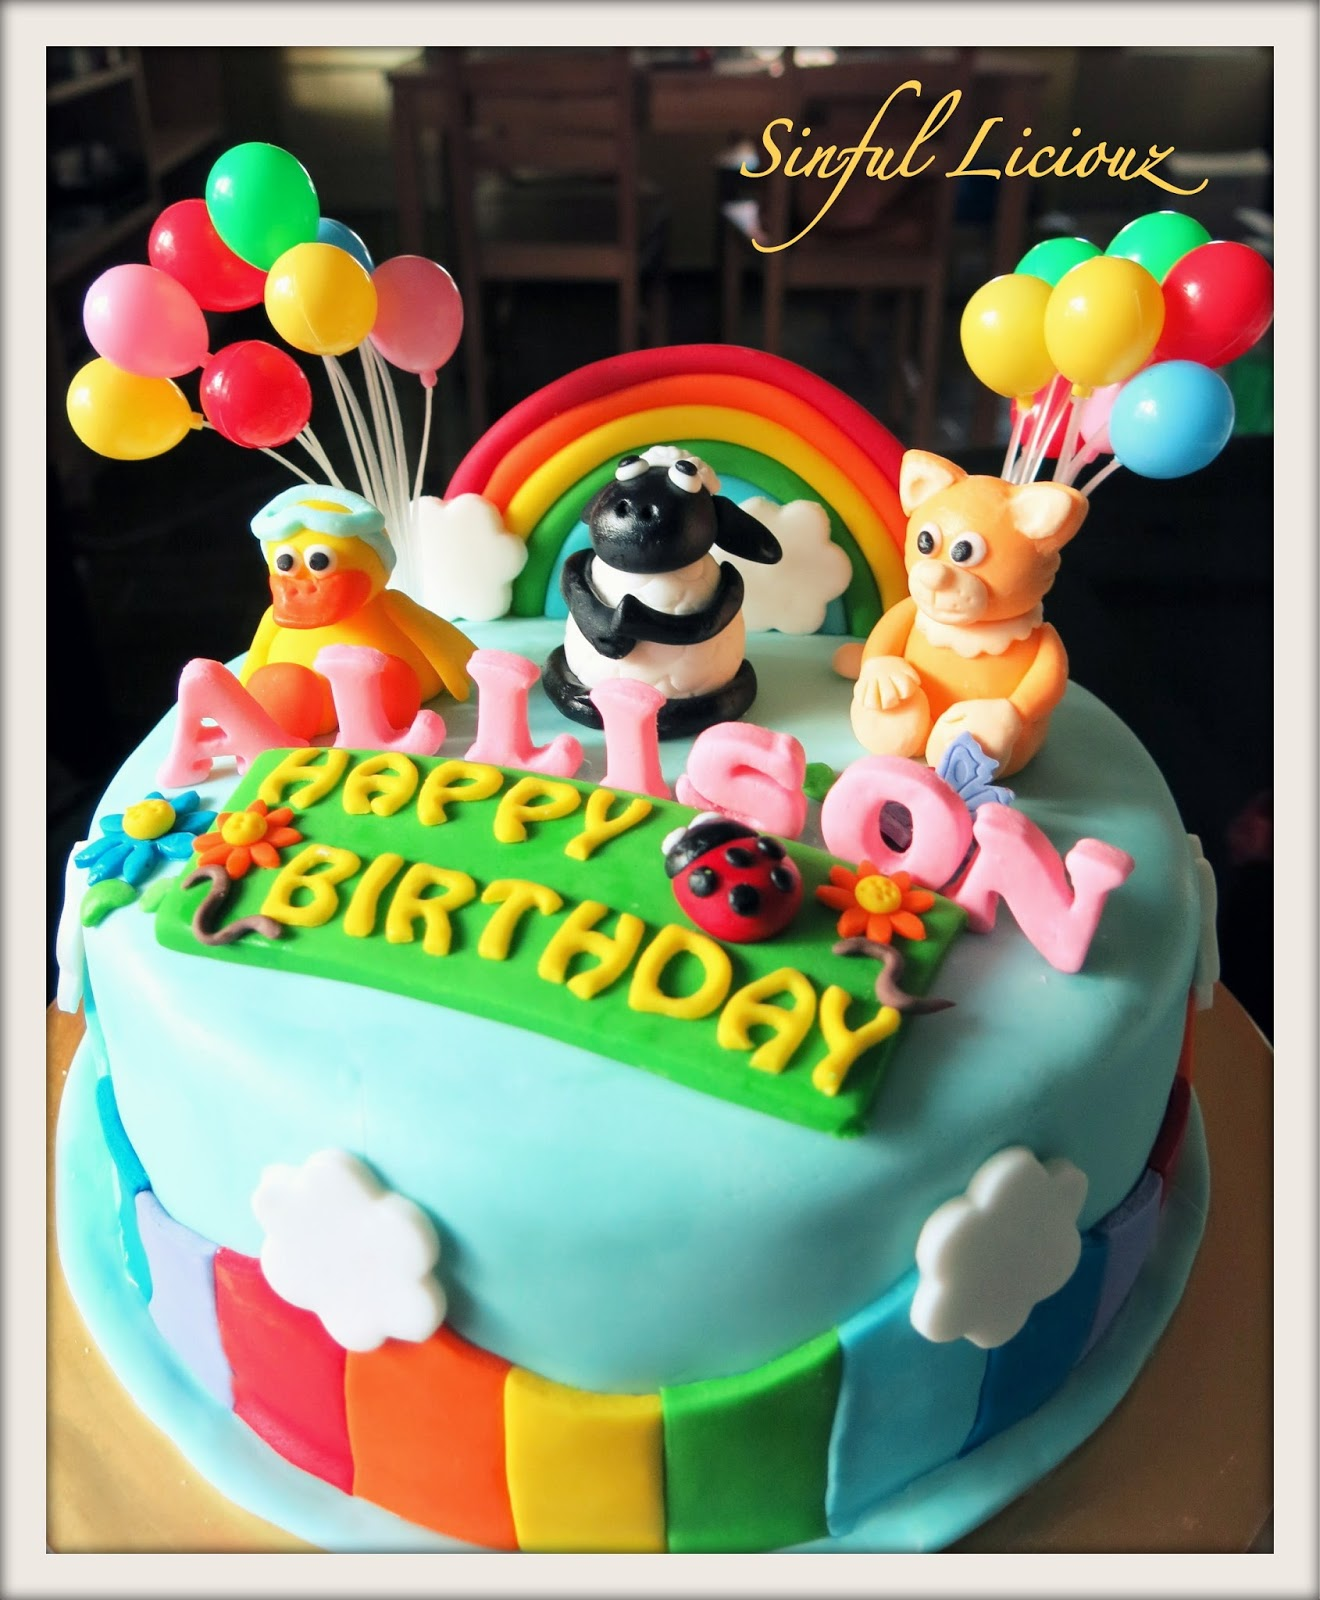 Sinful Liciouz Timmy & Friends Rainbow Theme Cake